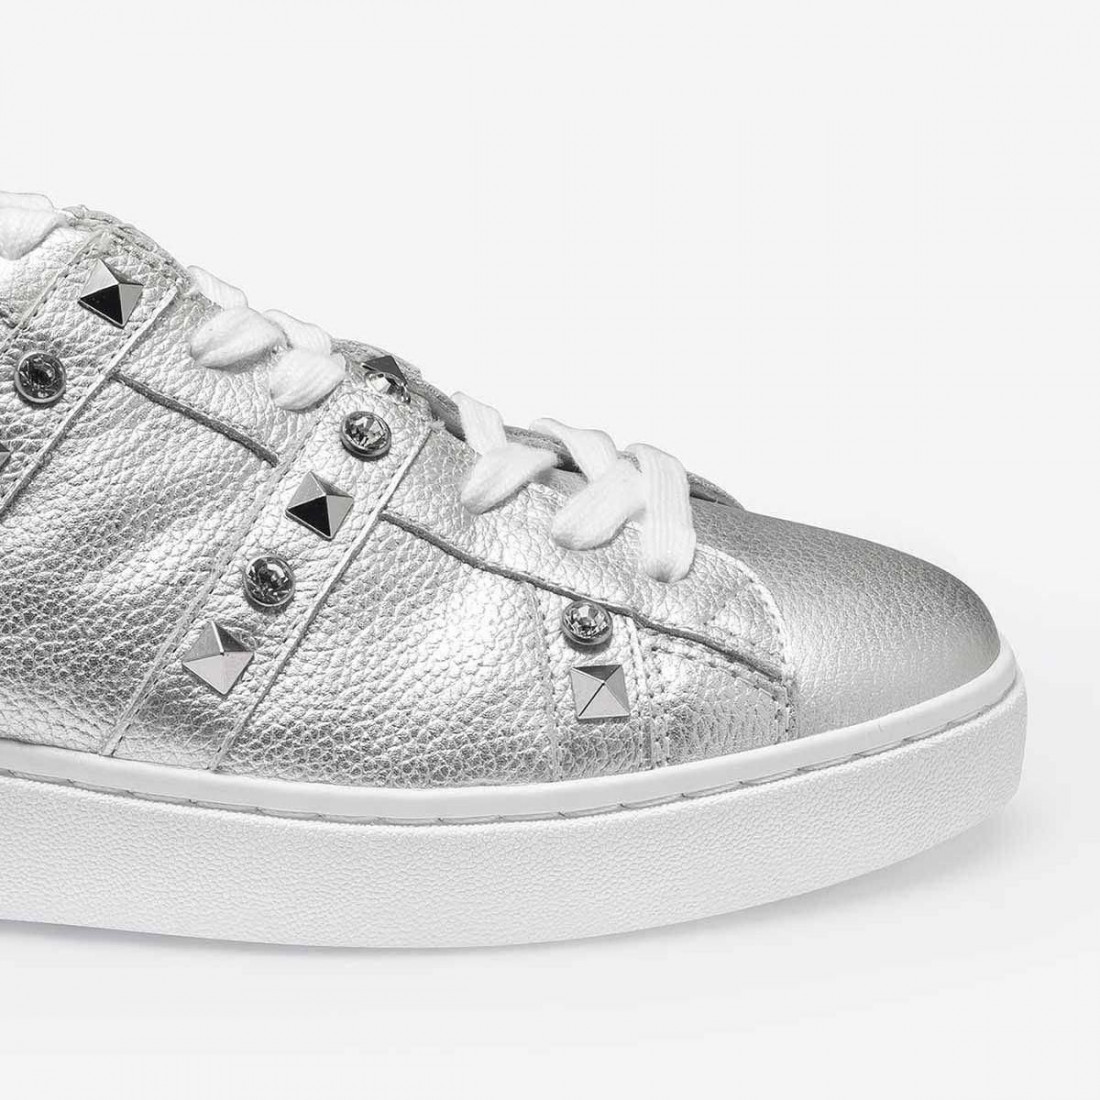 sneakers woman ash s18 party06 2788